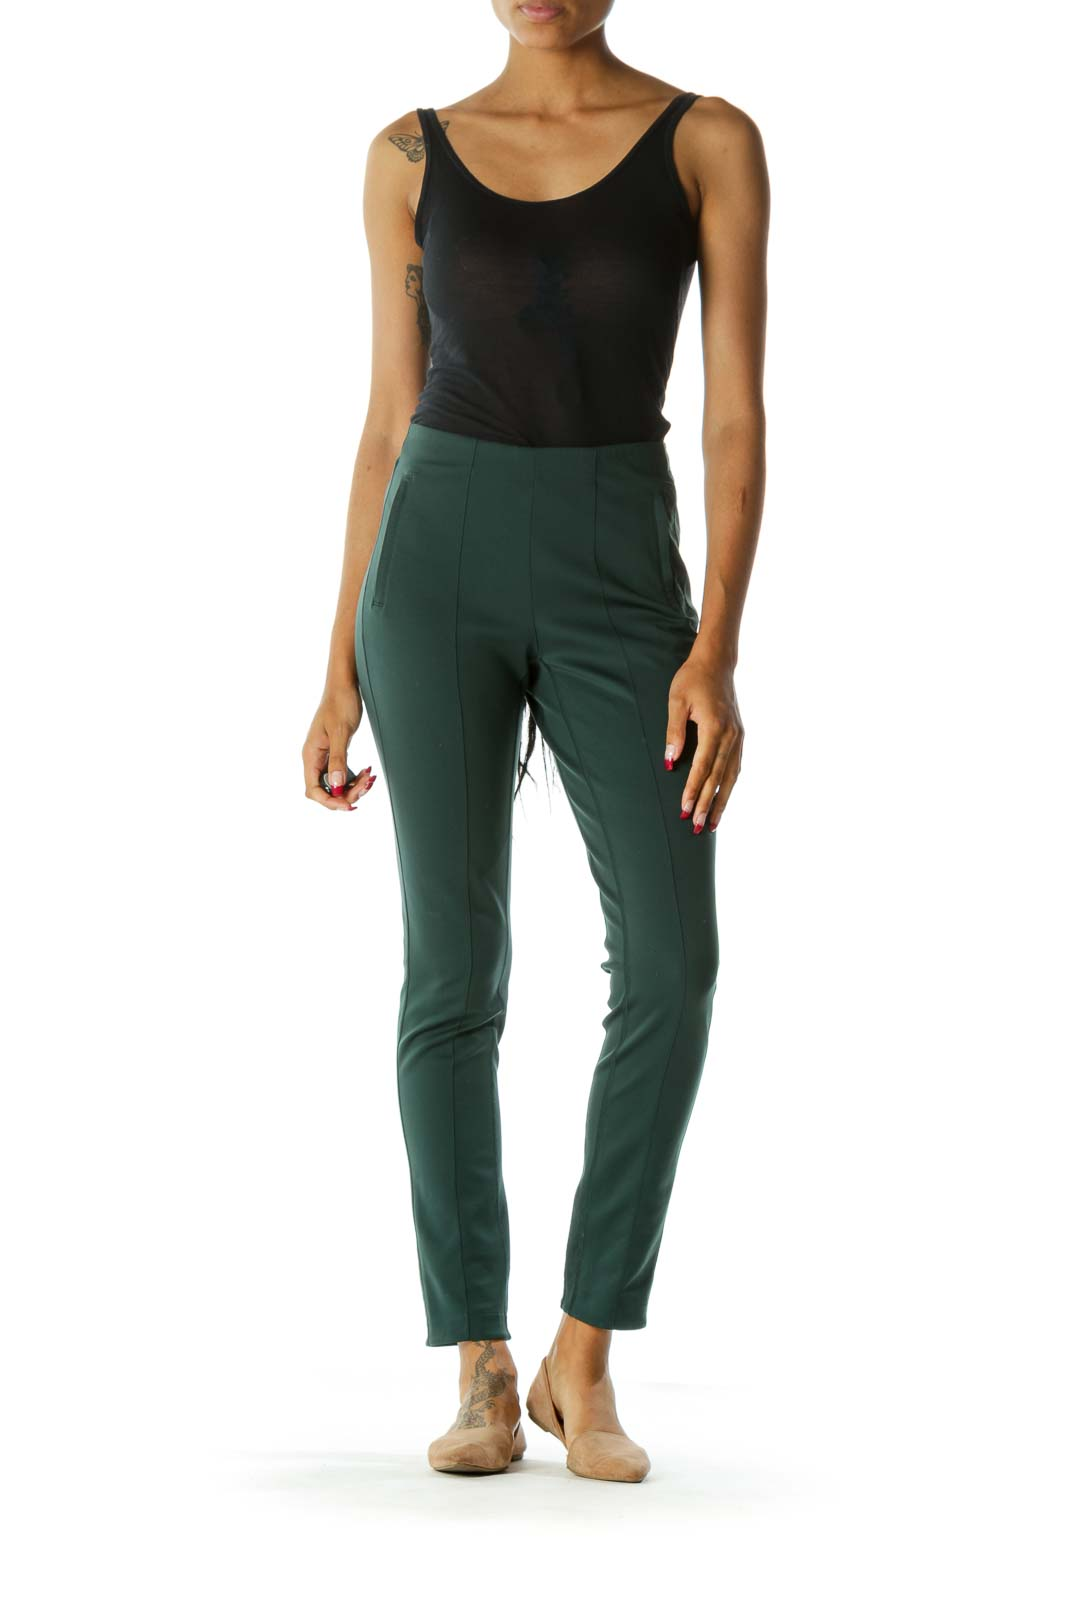 Green Sports Pant